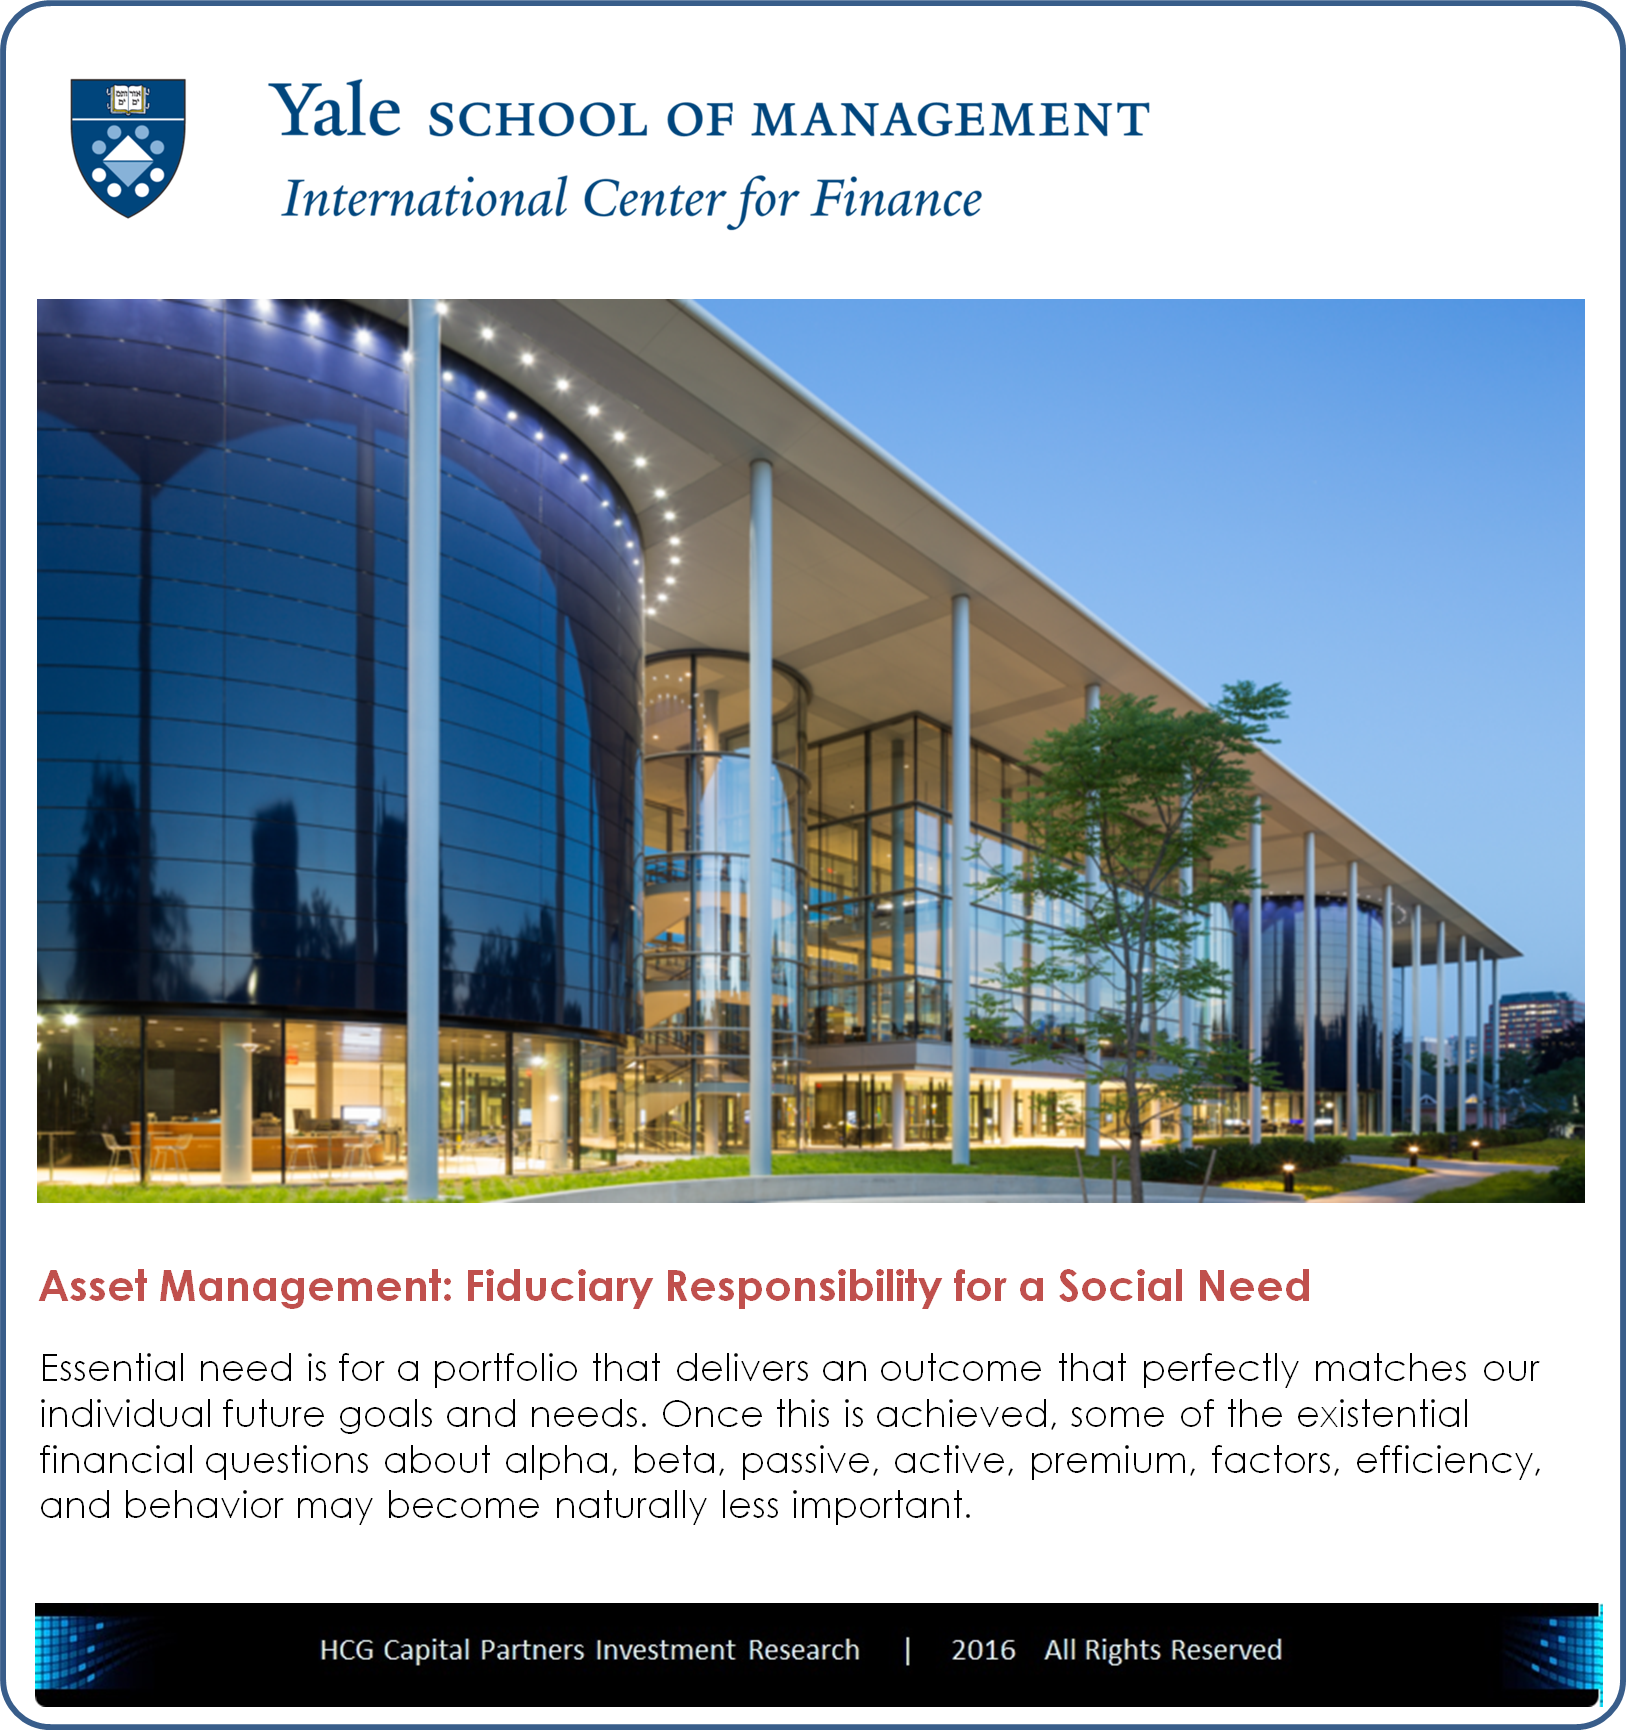 http://som.yale.edu/blog/asset-management-fiduciary-responsibility-social-need